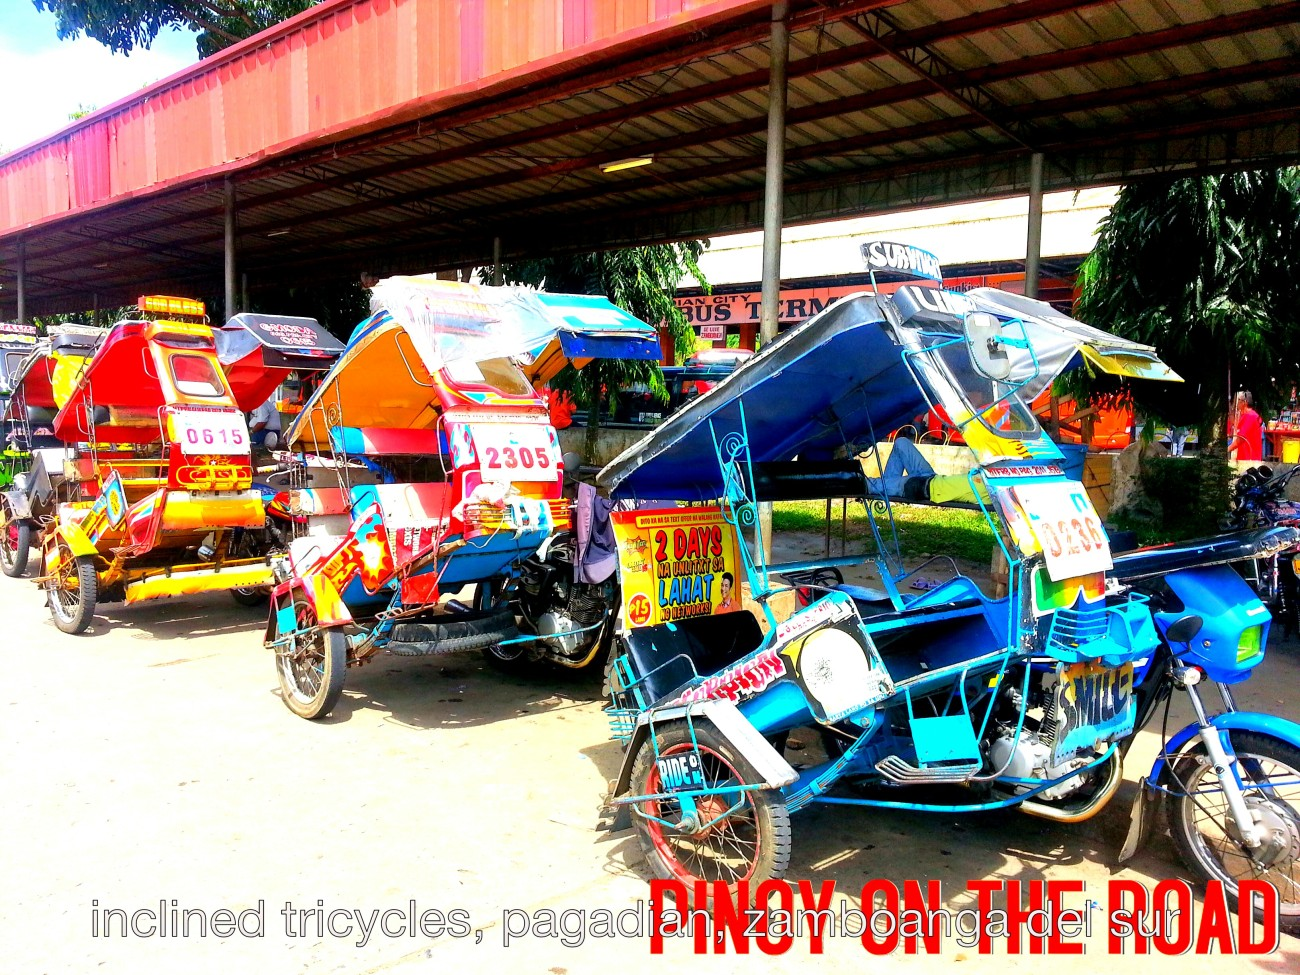 inclined tricycles of pagadian